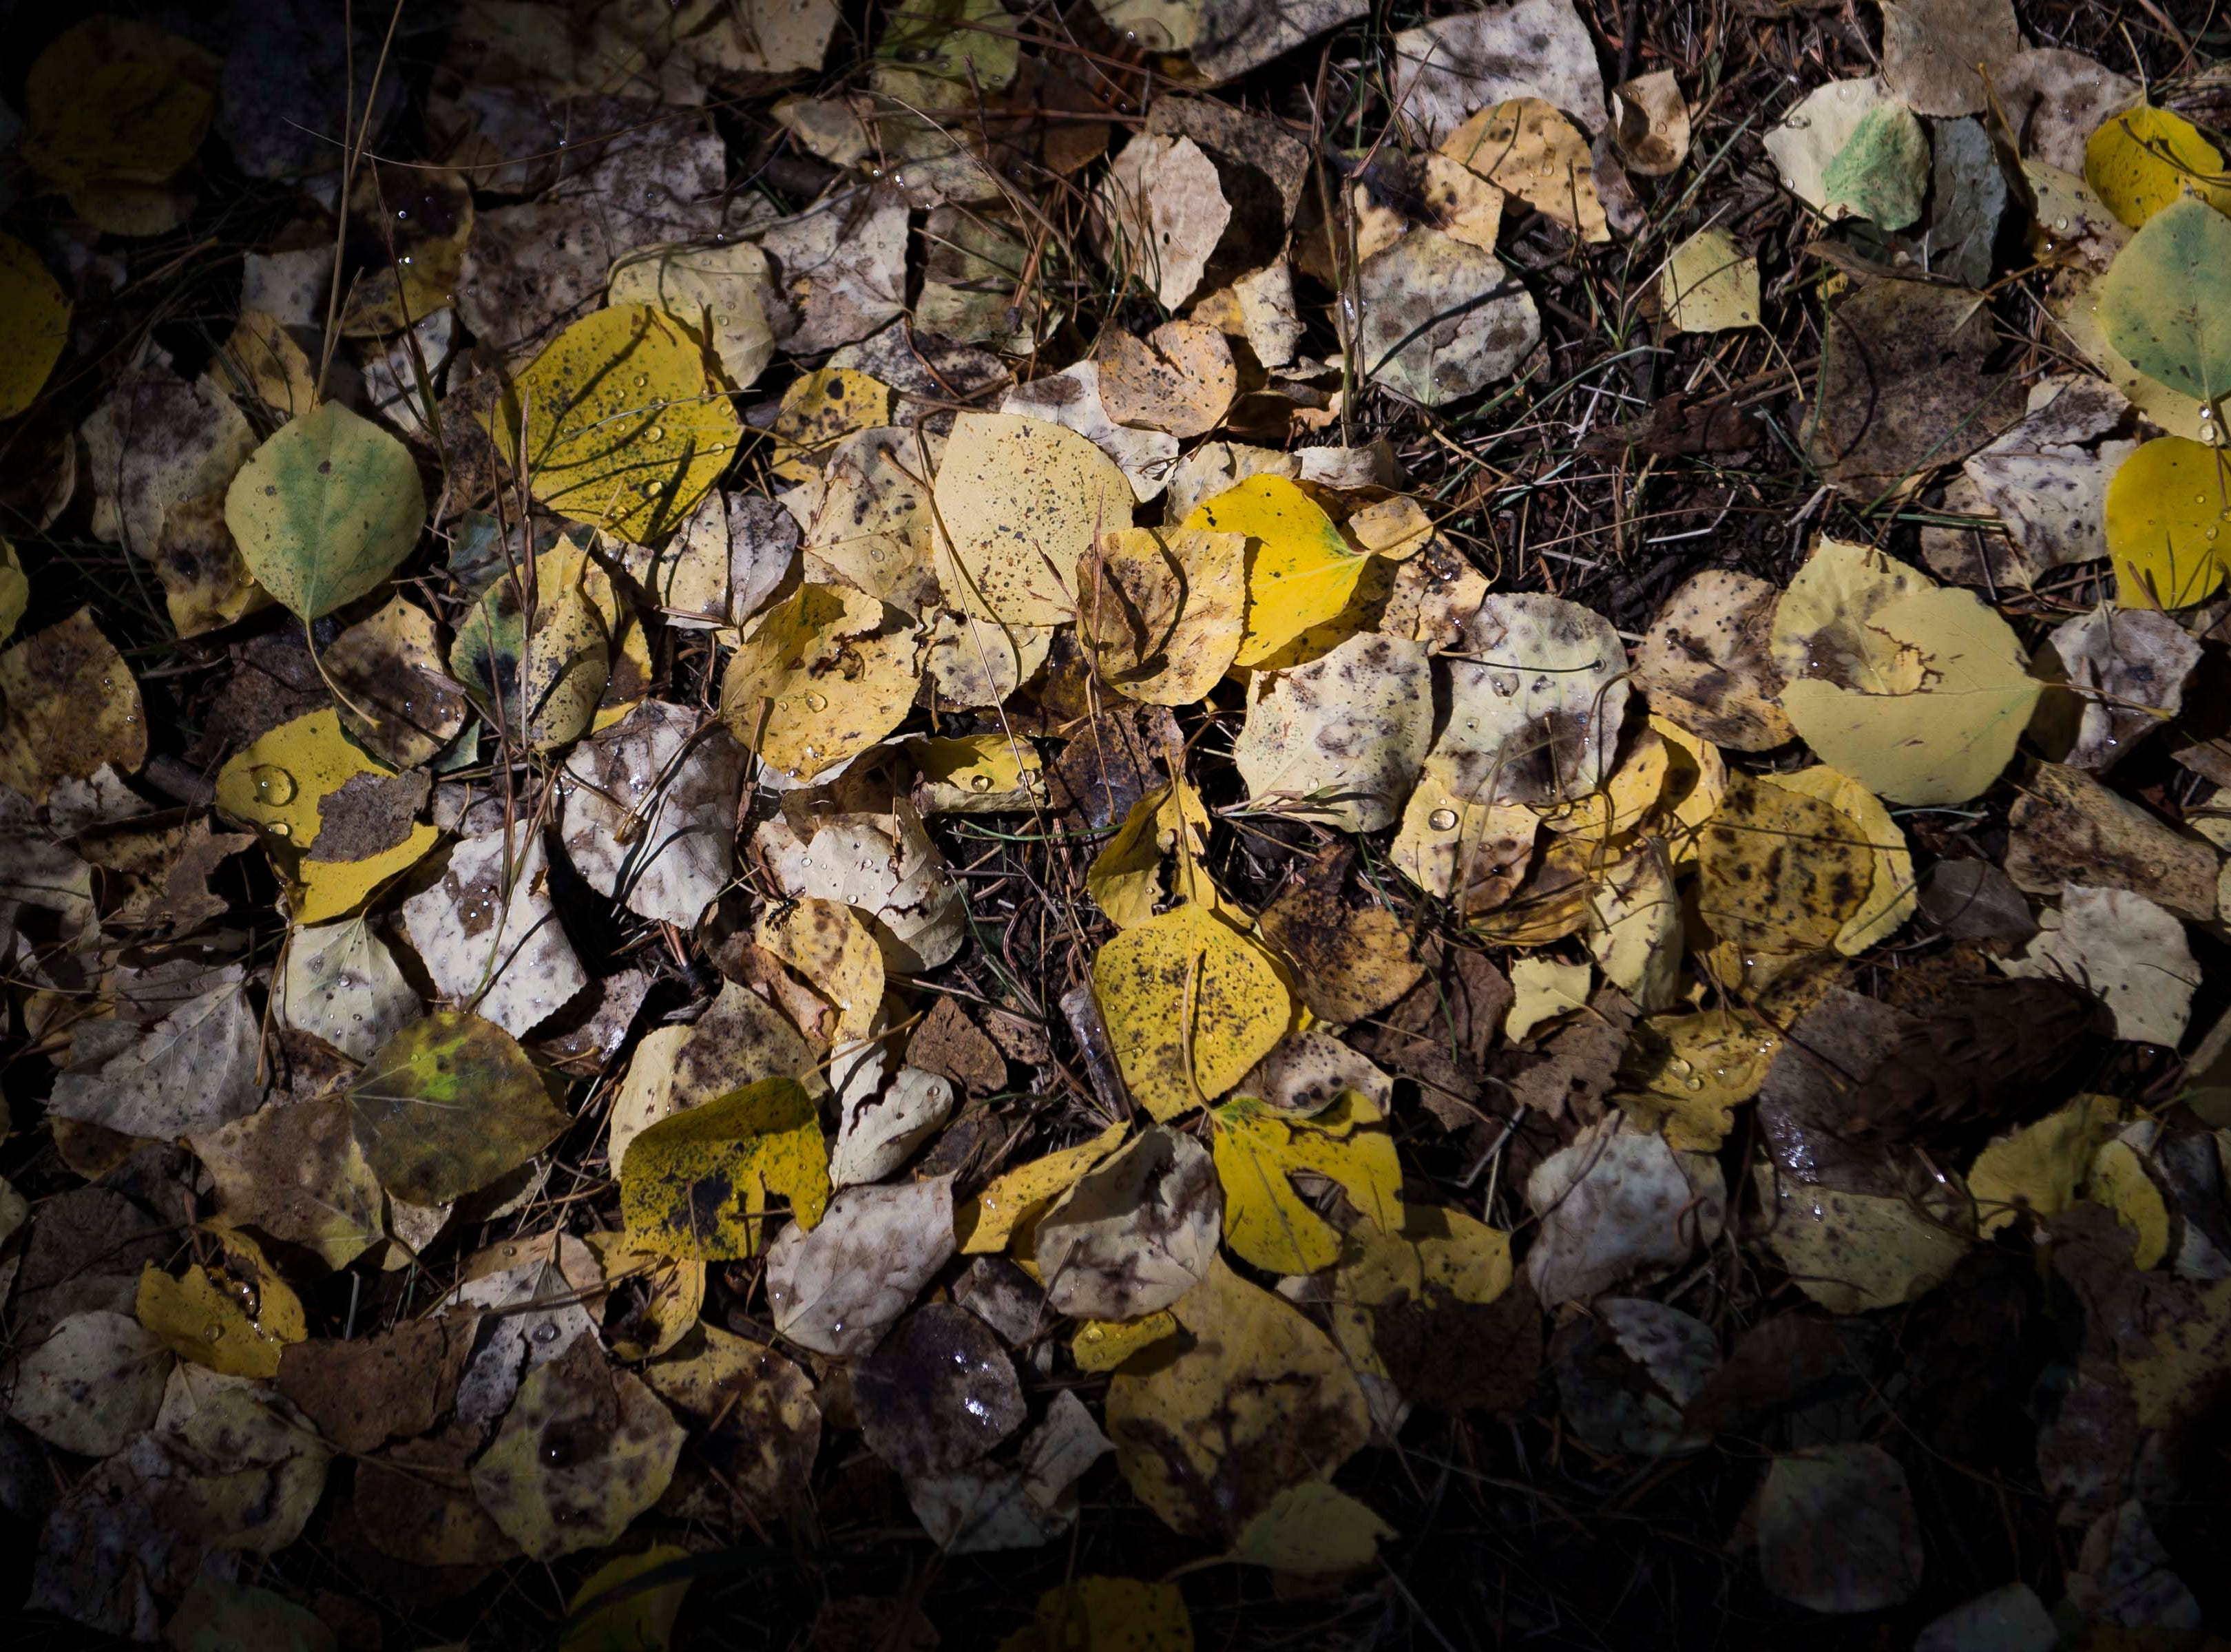 Fallen aspen leaves show a varied array of colors off the Cub Lake trail on Monday, Sept. 24, 2018, at Rocky Mountain National Park in Colo.